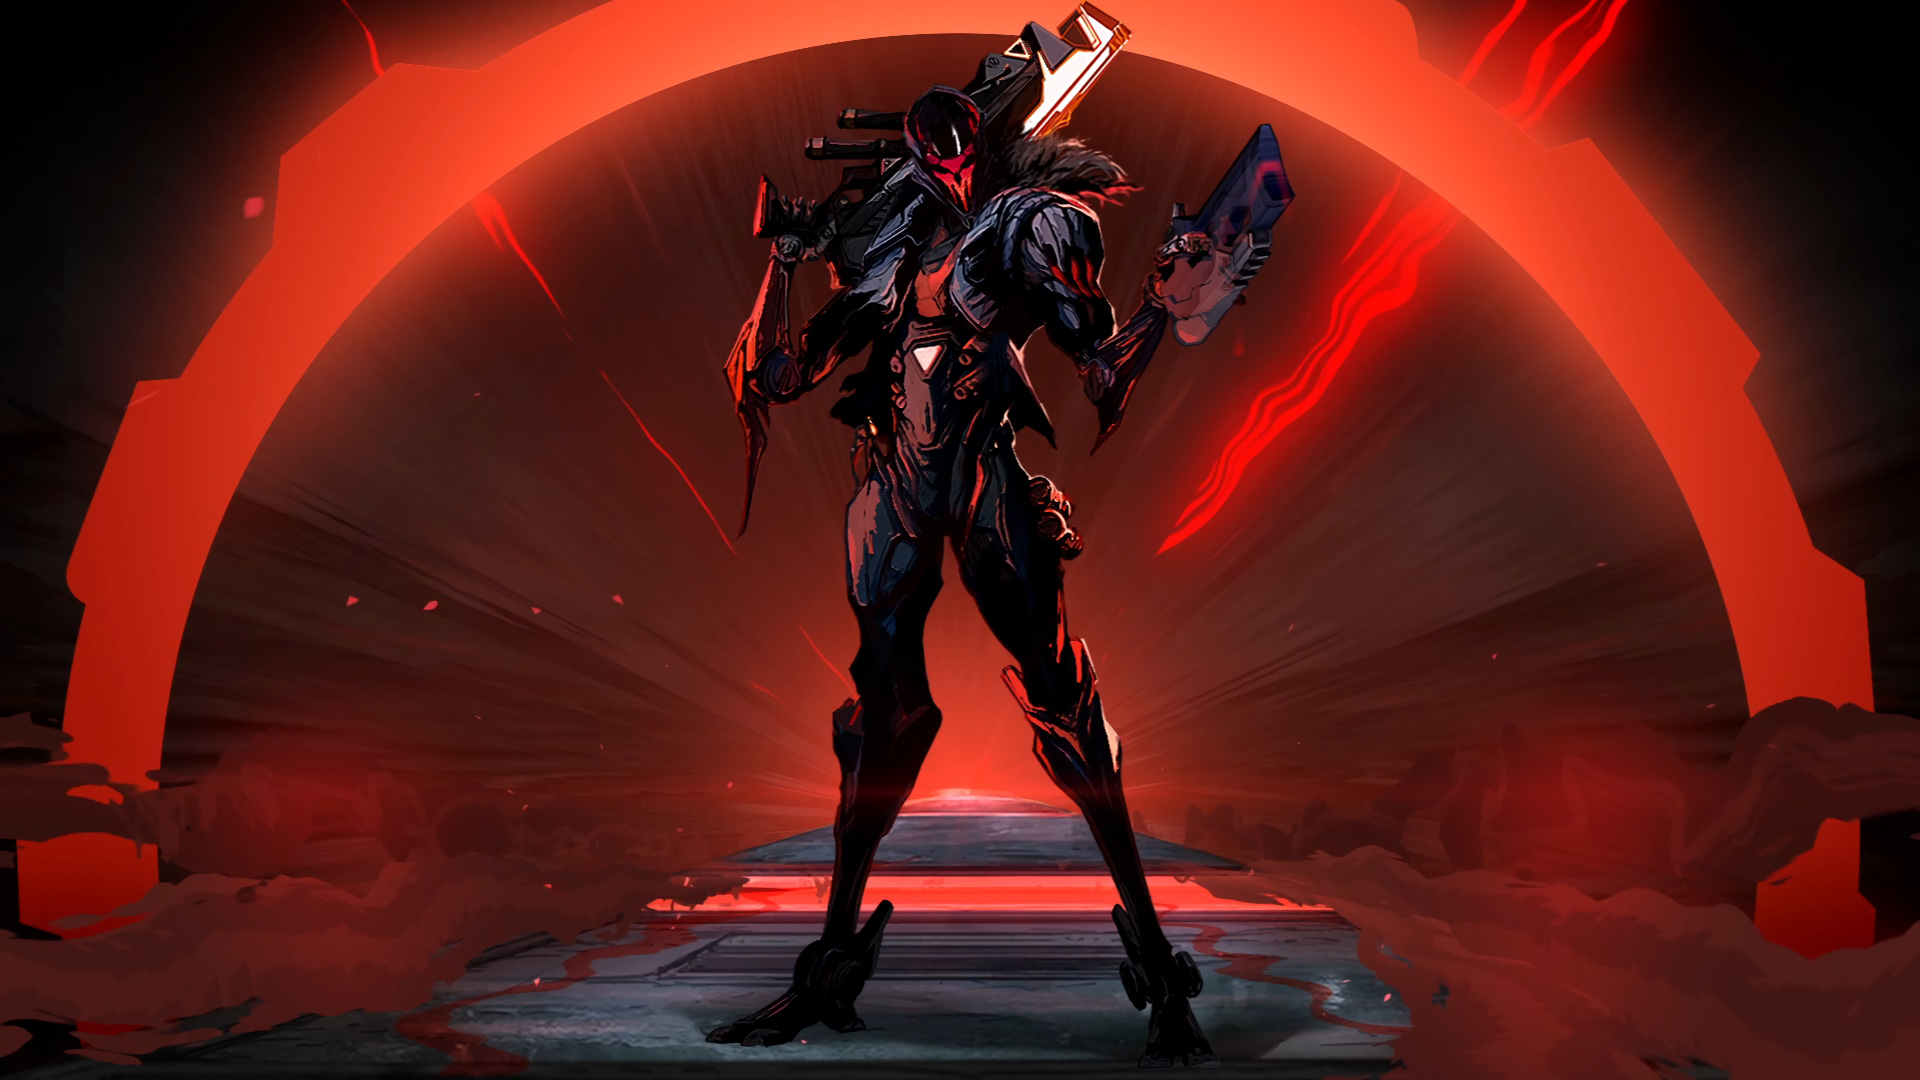 Download Engine 3d Live Wallpaper Project Jhin Promo League Of Legends Wallpapers Art Of Lol